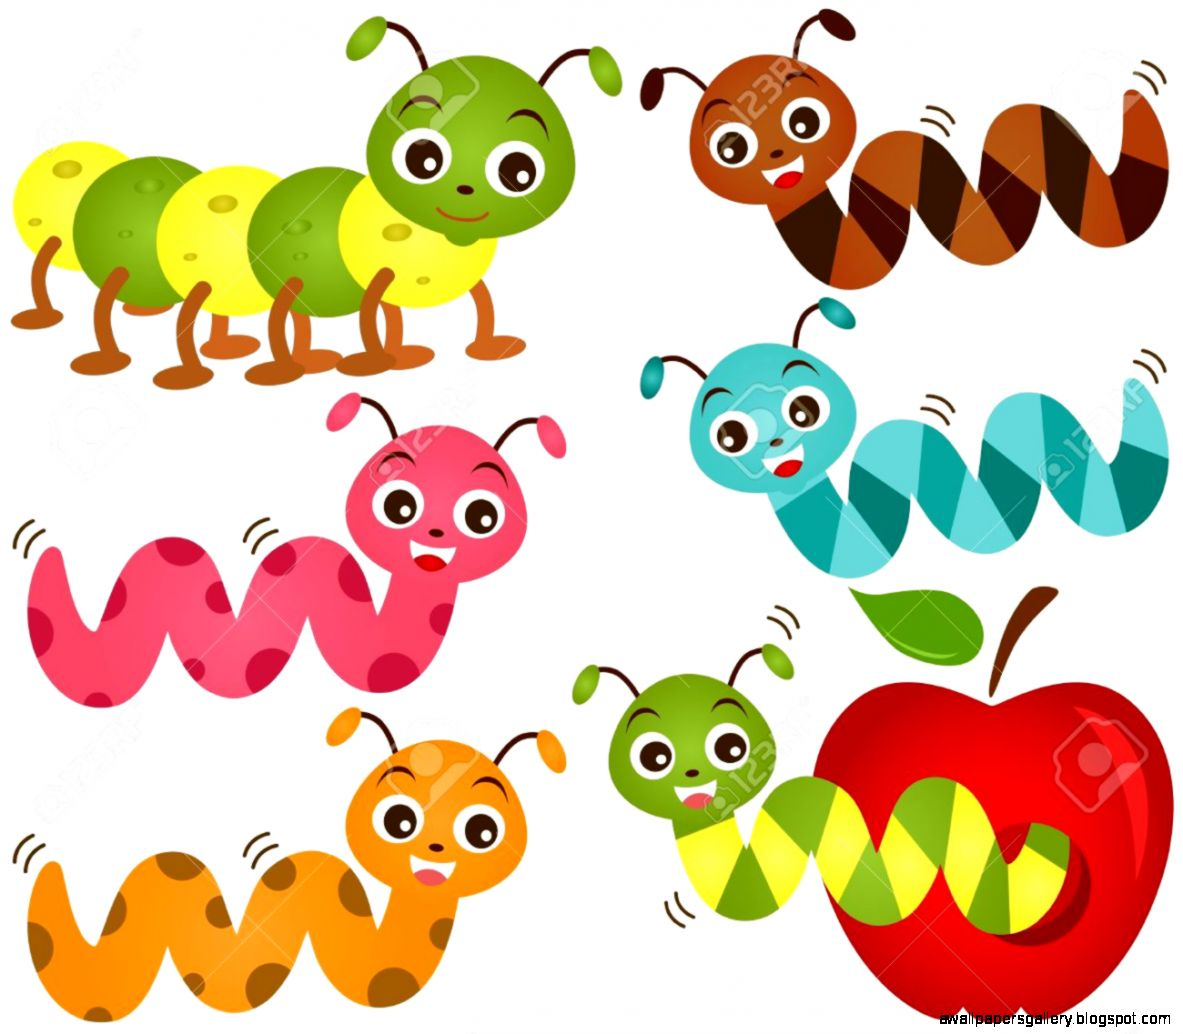 clipart apple worm - photo #38